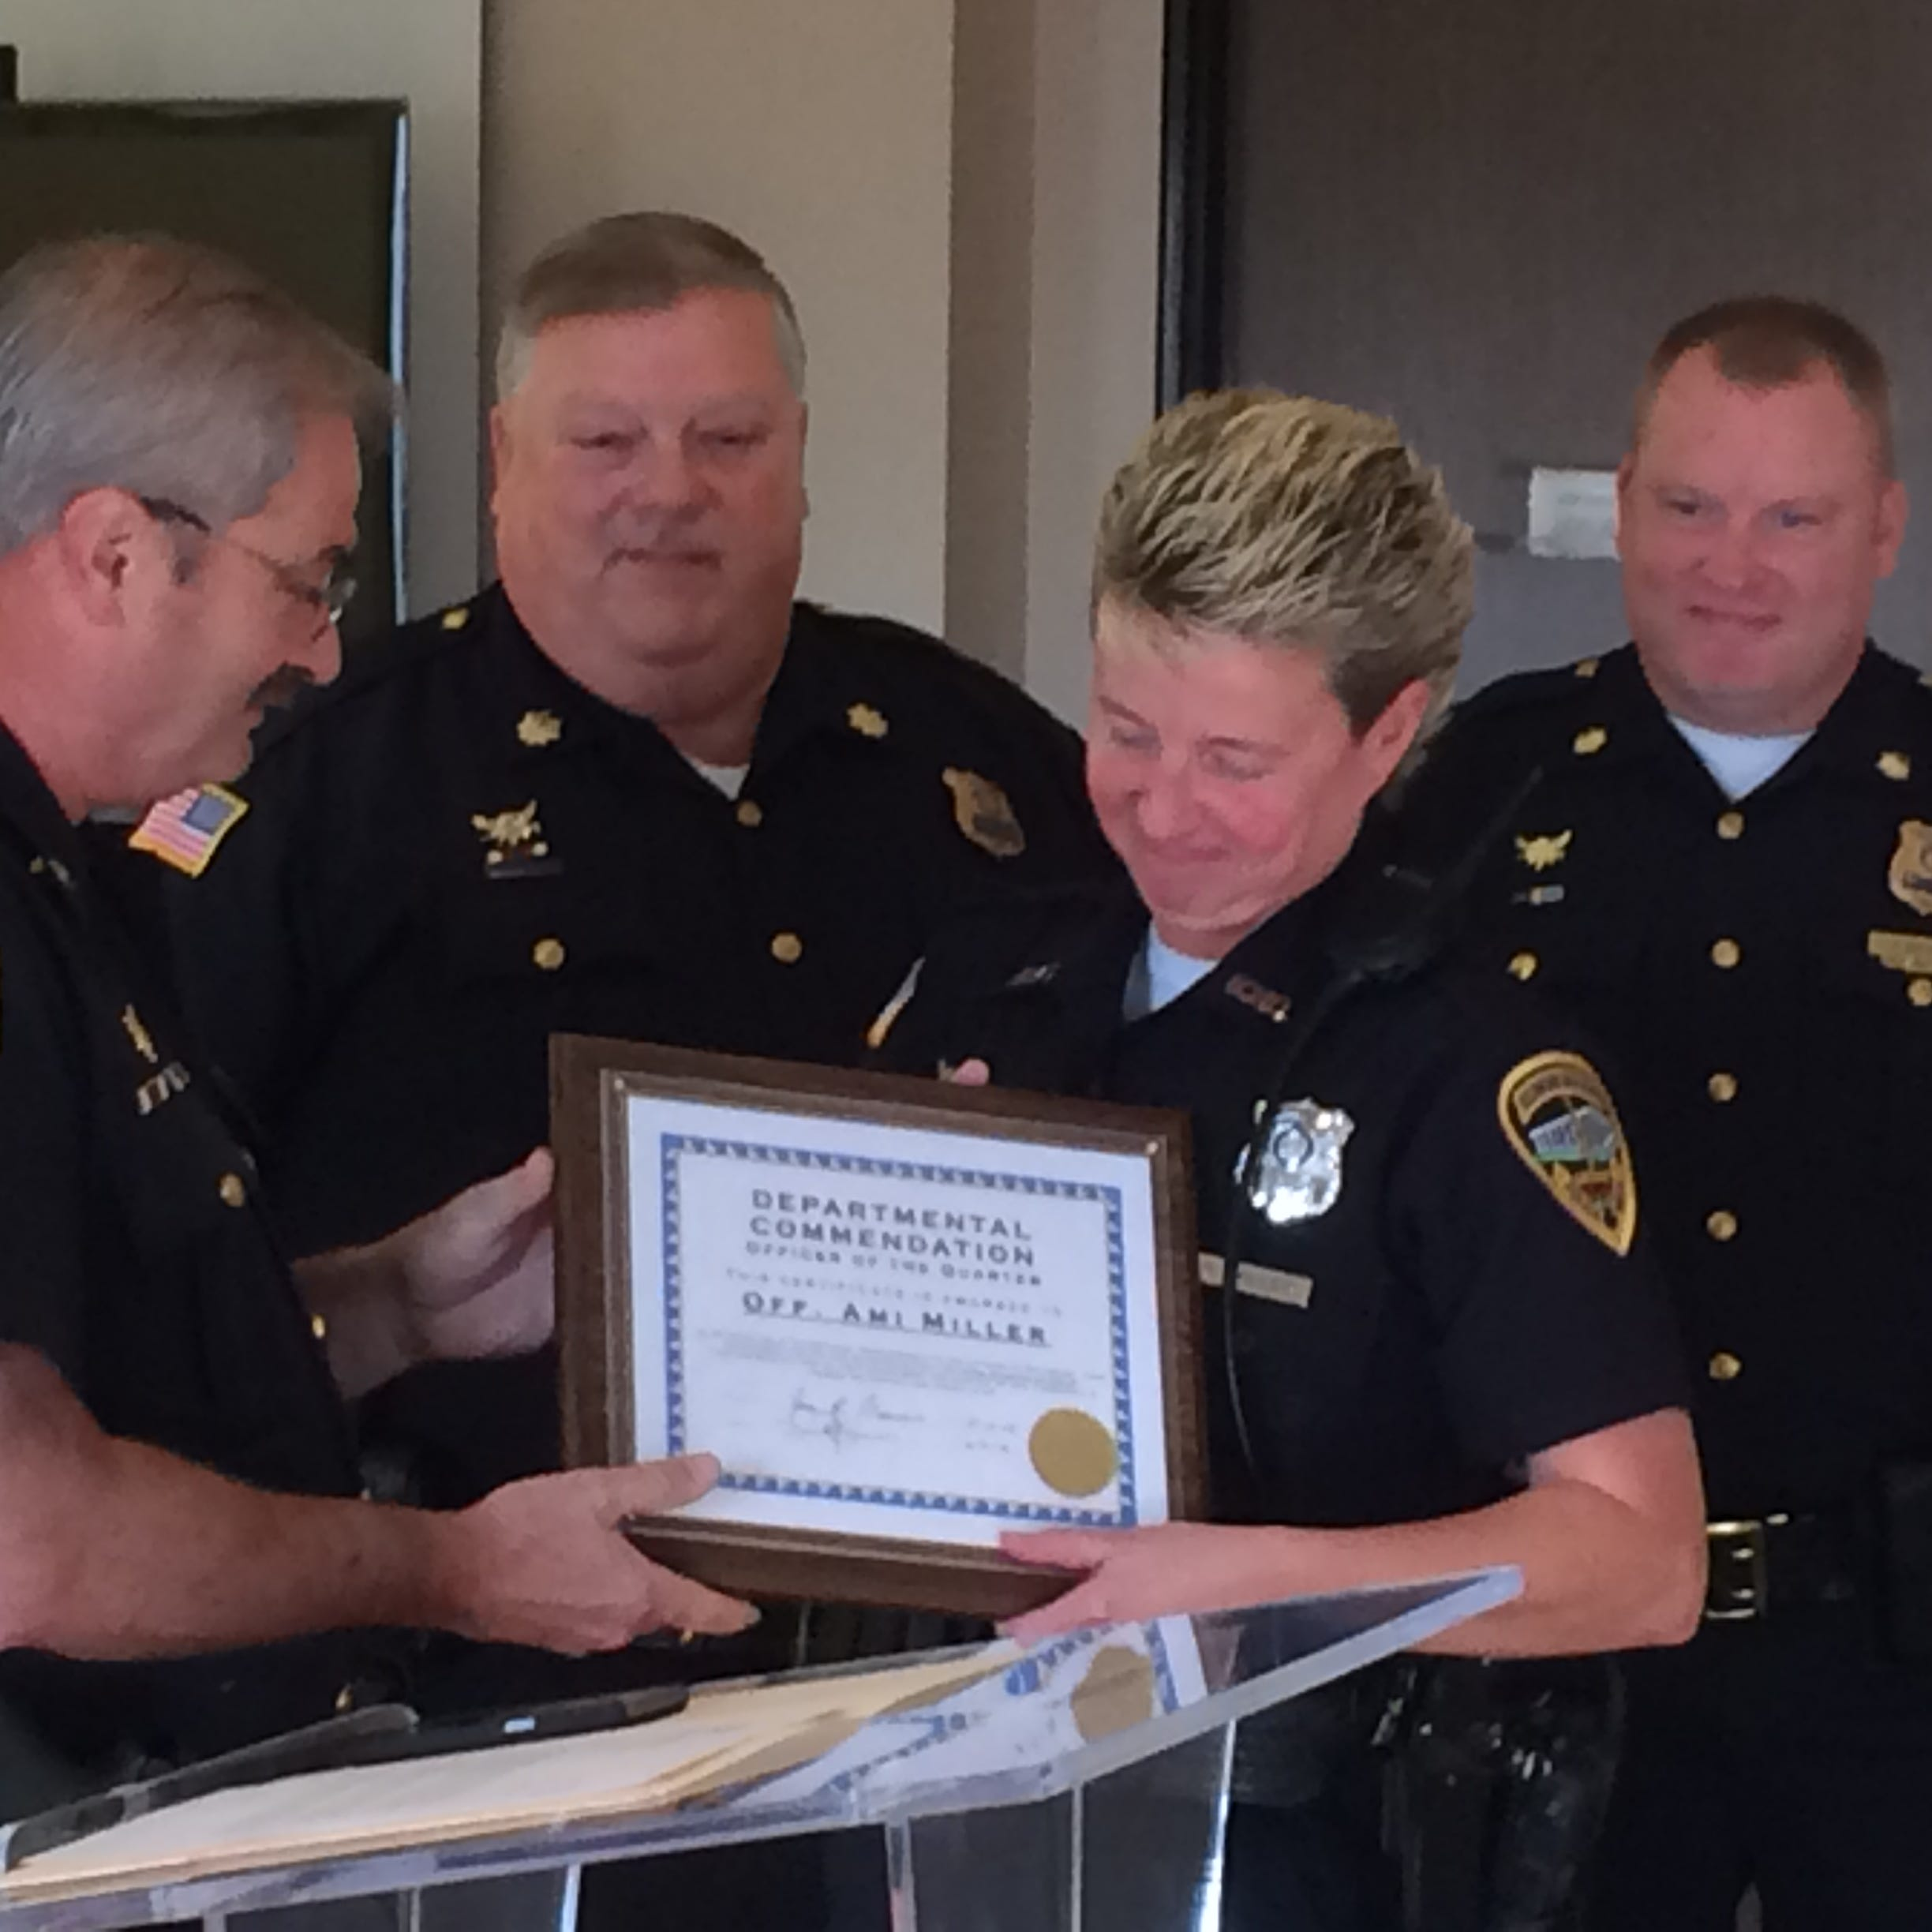 Repeated kindness and service result in RPD's officer of the quarter honor